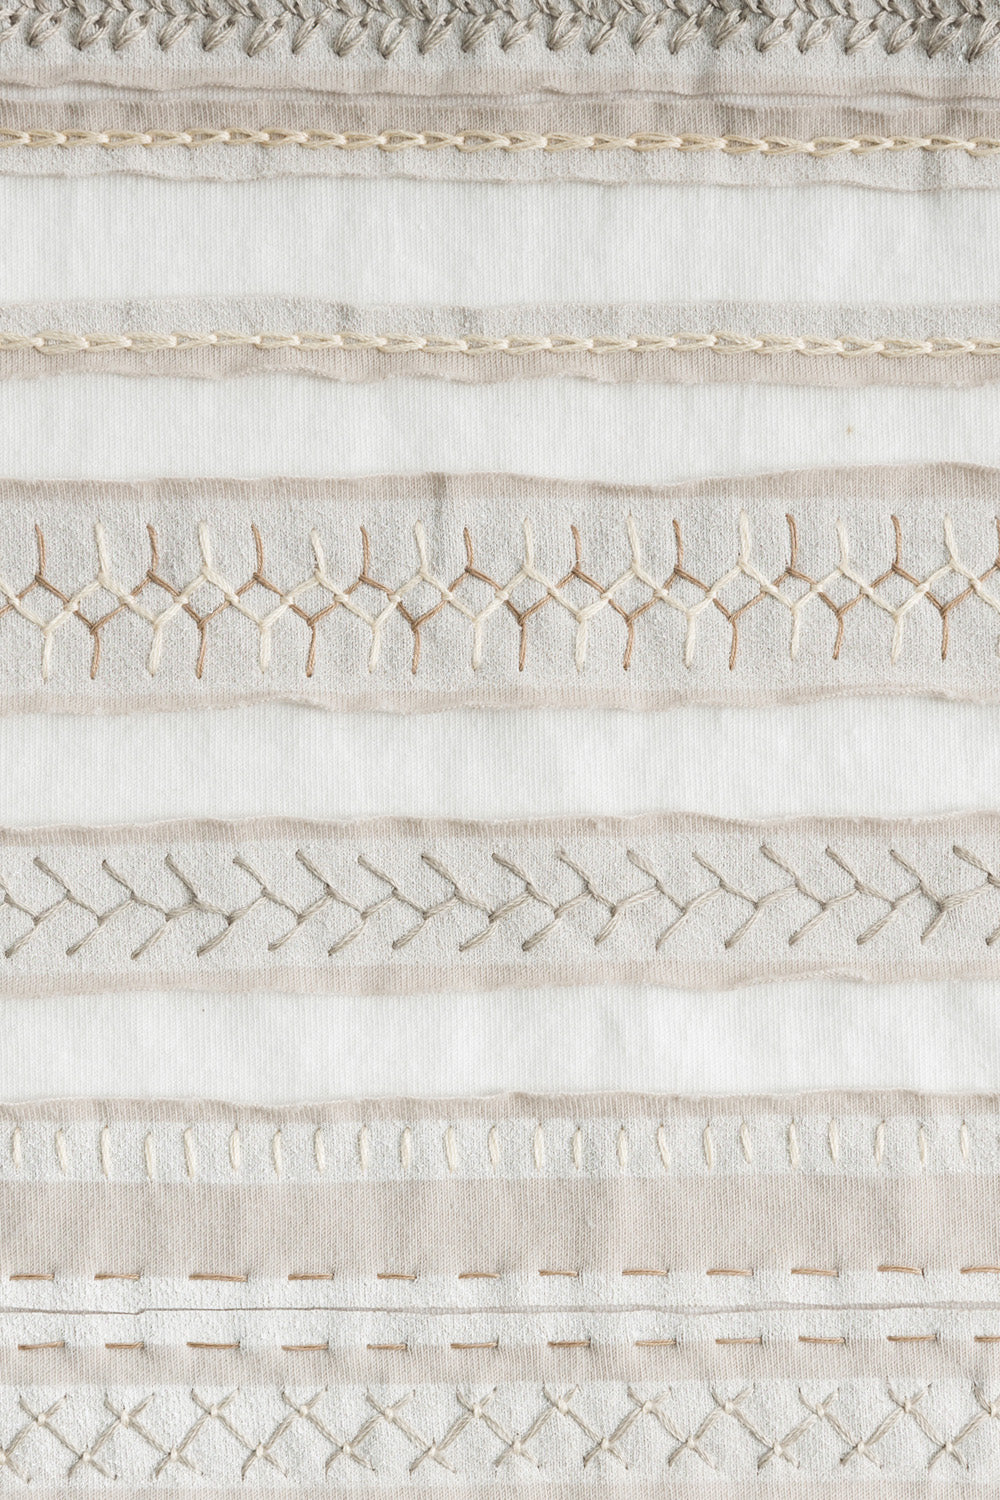 The School of Making Stripe Scarf Kit with Embroidery Stitches White Tan